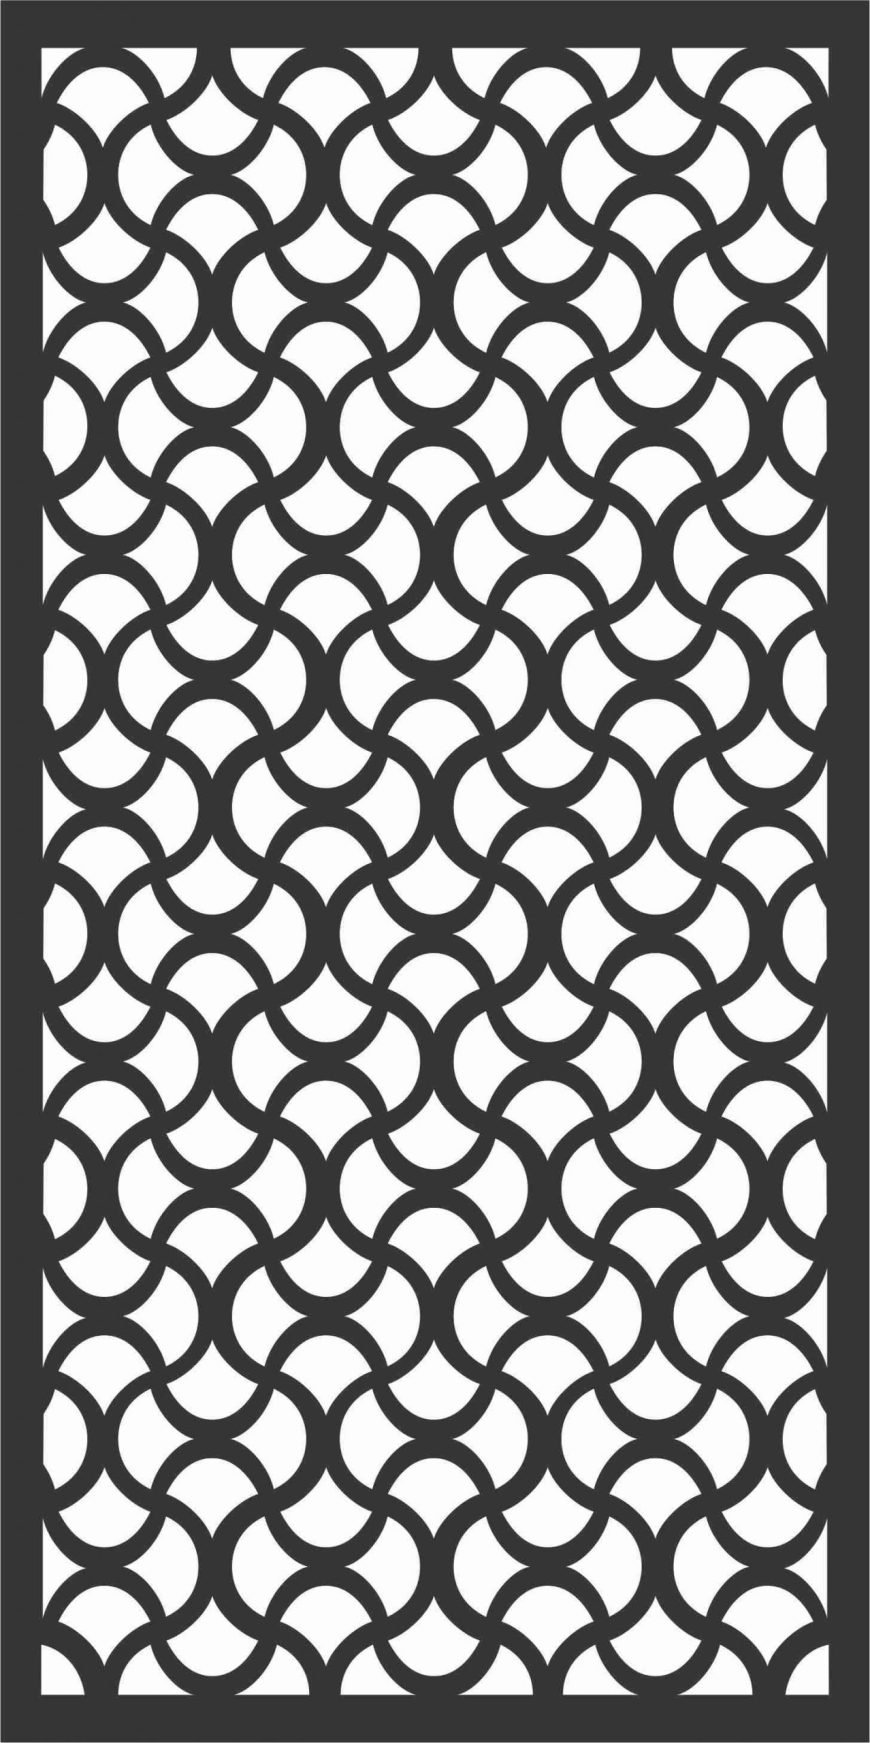 Decorative Screen Patterns For Laser Cutting 162 Free DXF File